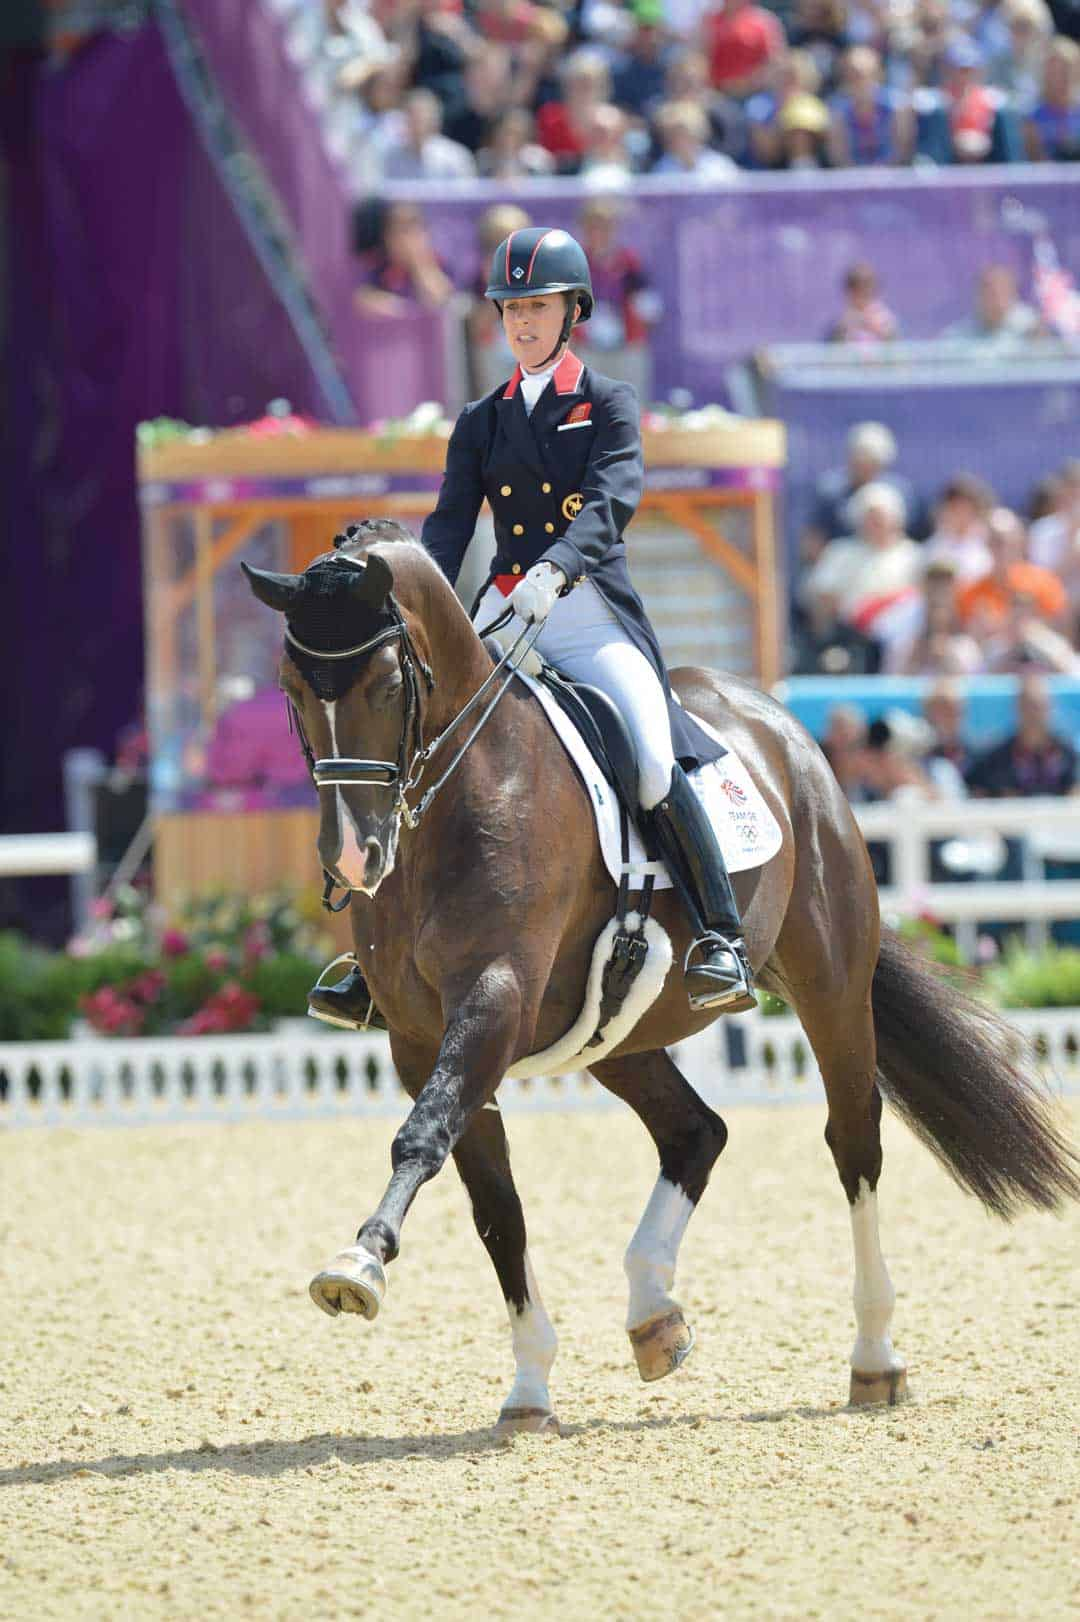 What Is Charlotte Dujardin Famous For